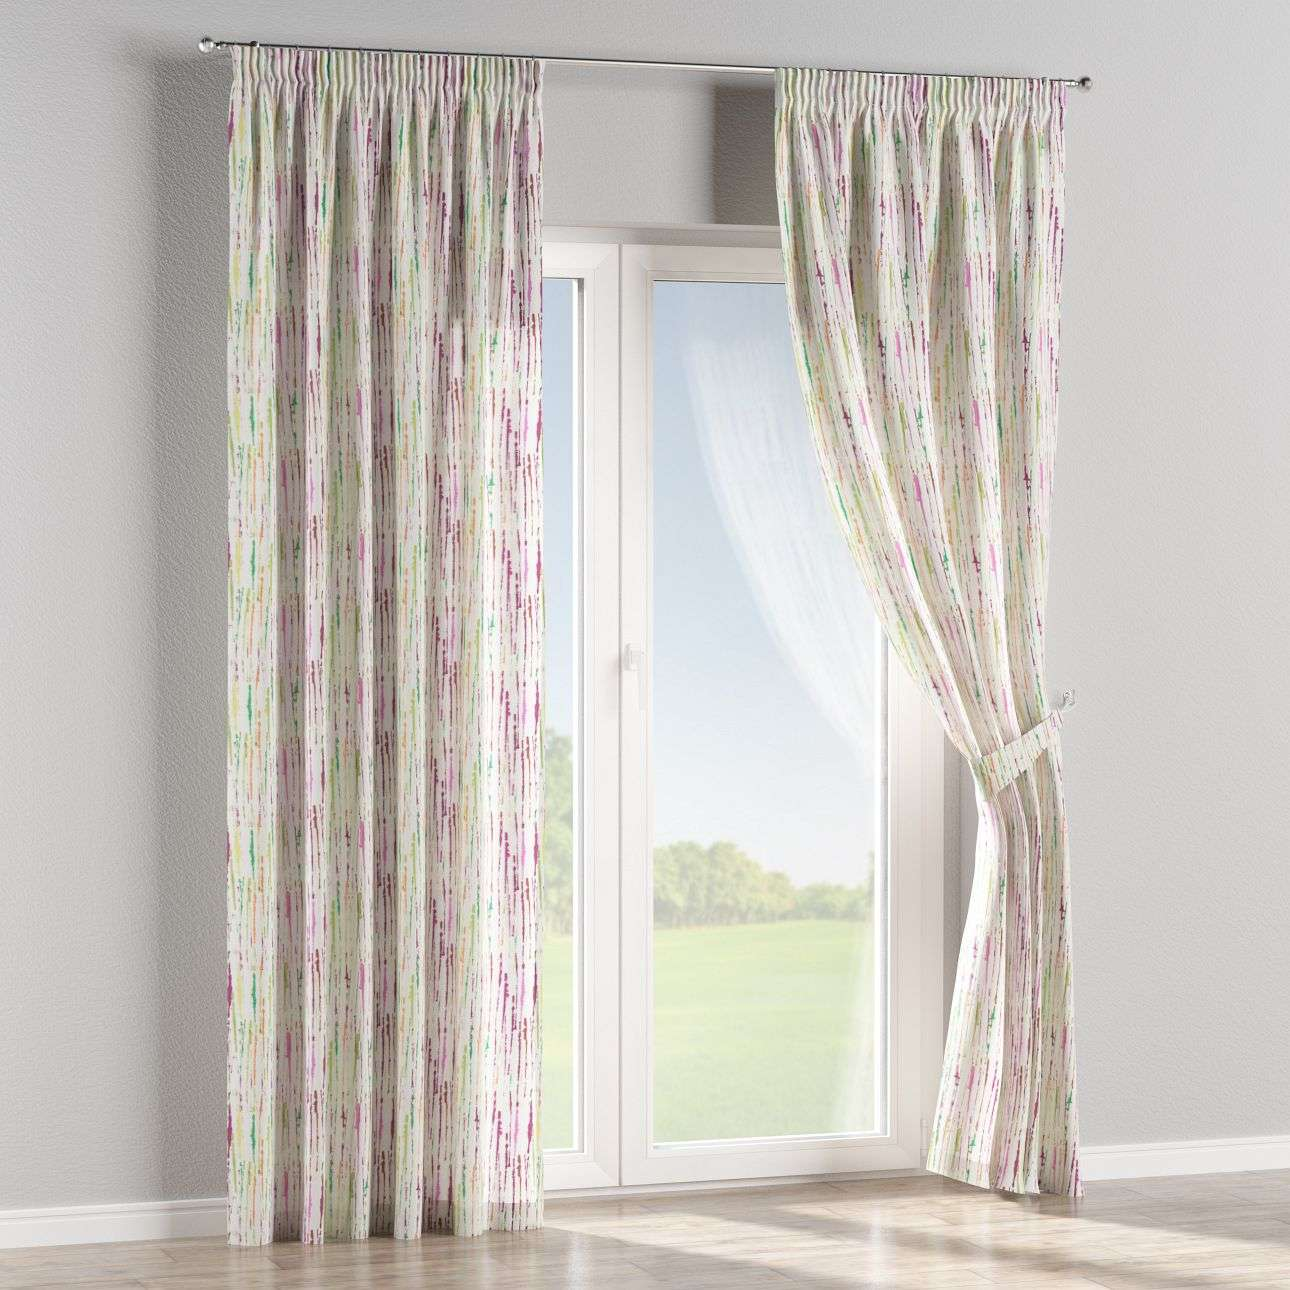 Pencil pleat curtains in collection Aquarelle, fabric: 140-72